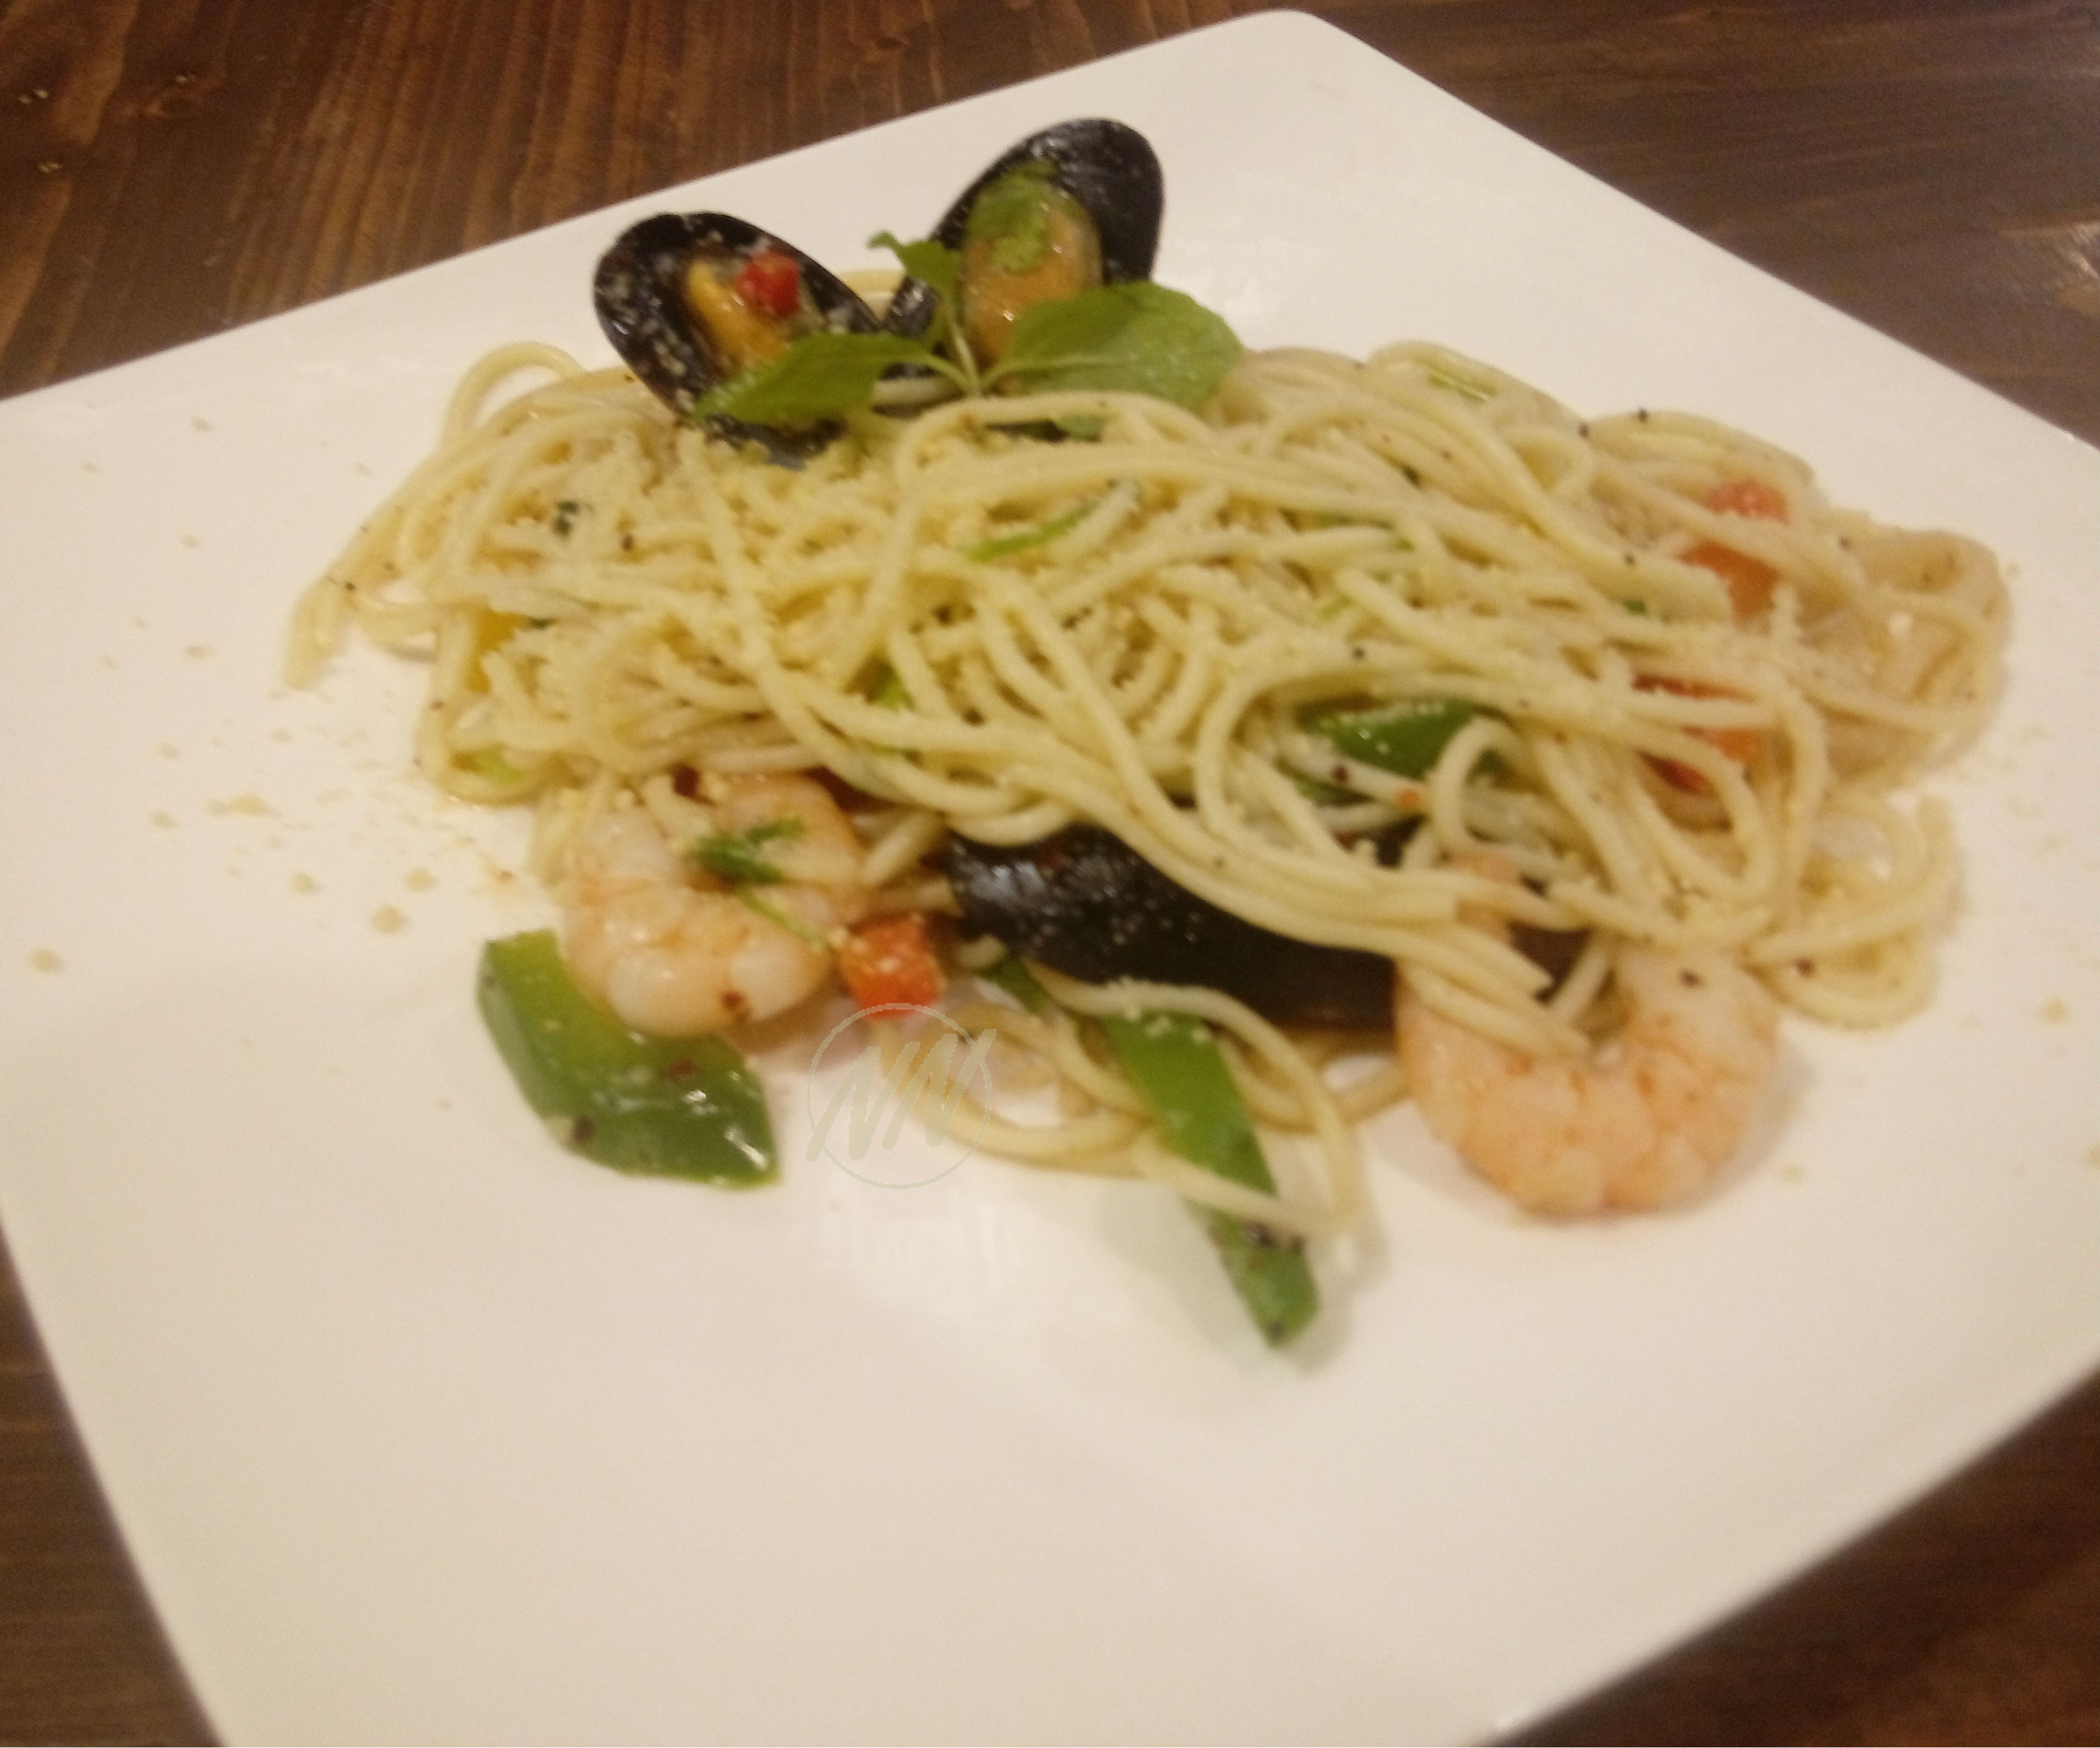 Spicy Seafood Medley Olio - RM19.90